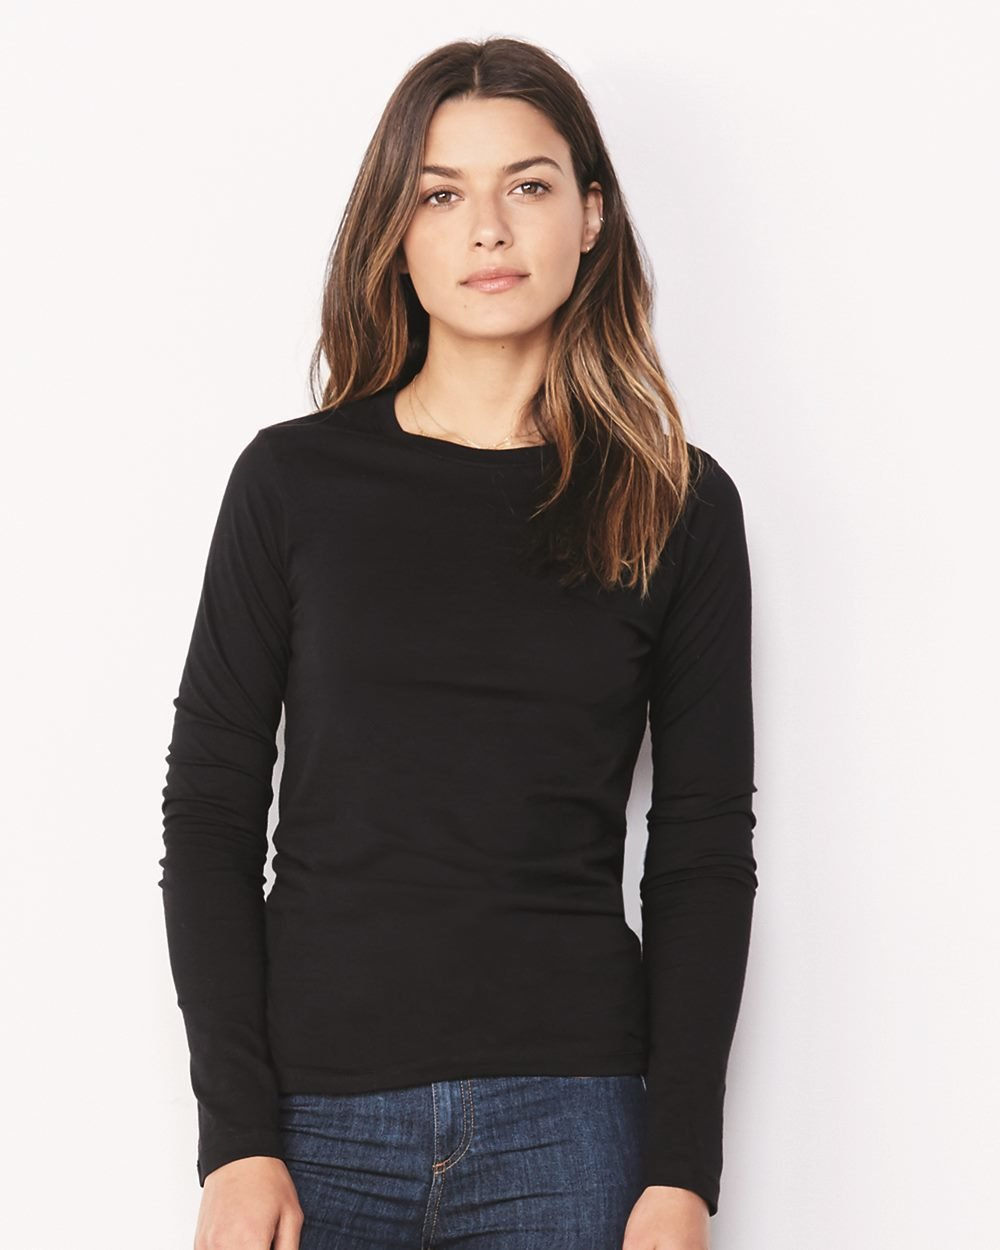 Women's Long Sleeve Crew Neck Jersey Tee - (STYLE#PRBC006500)